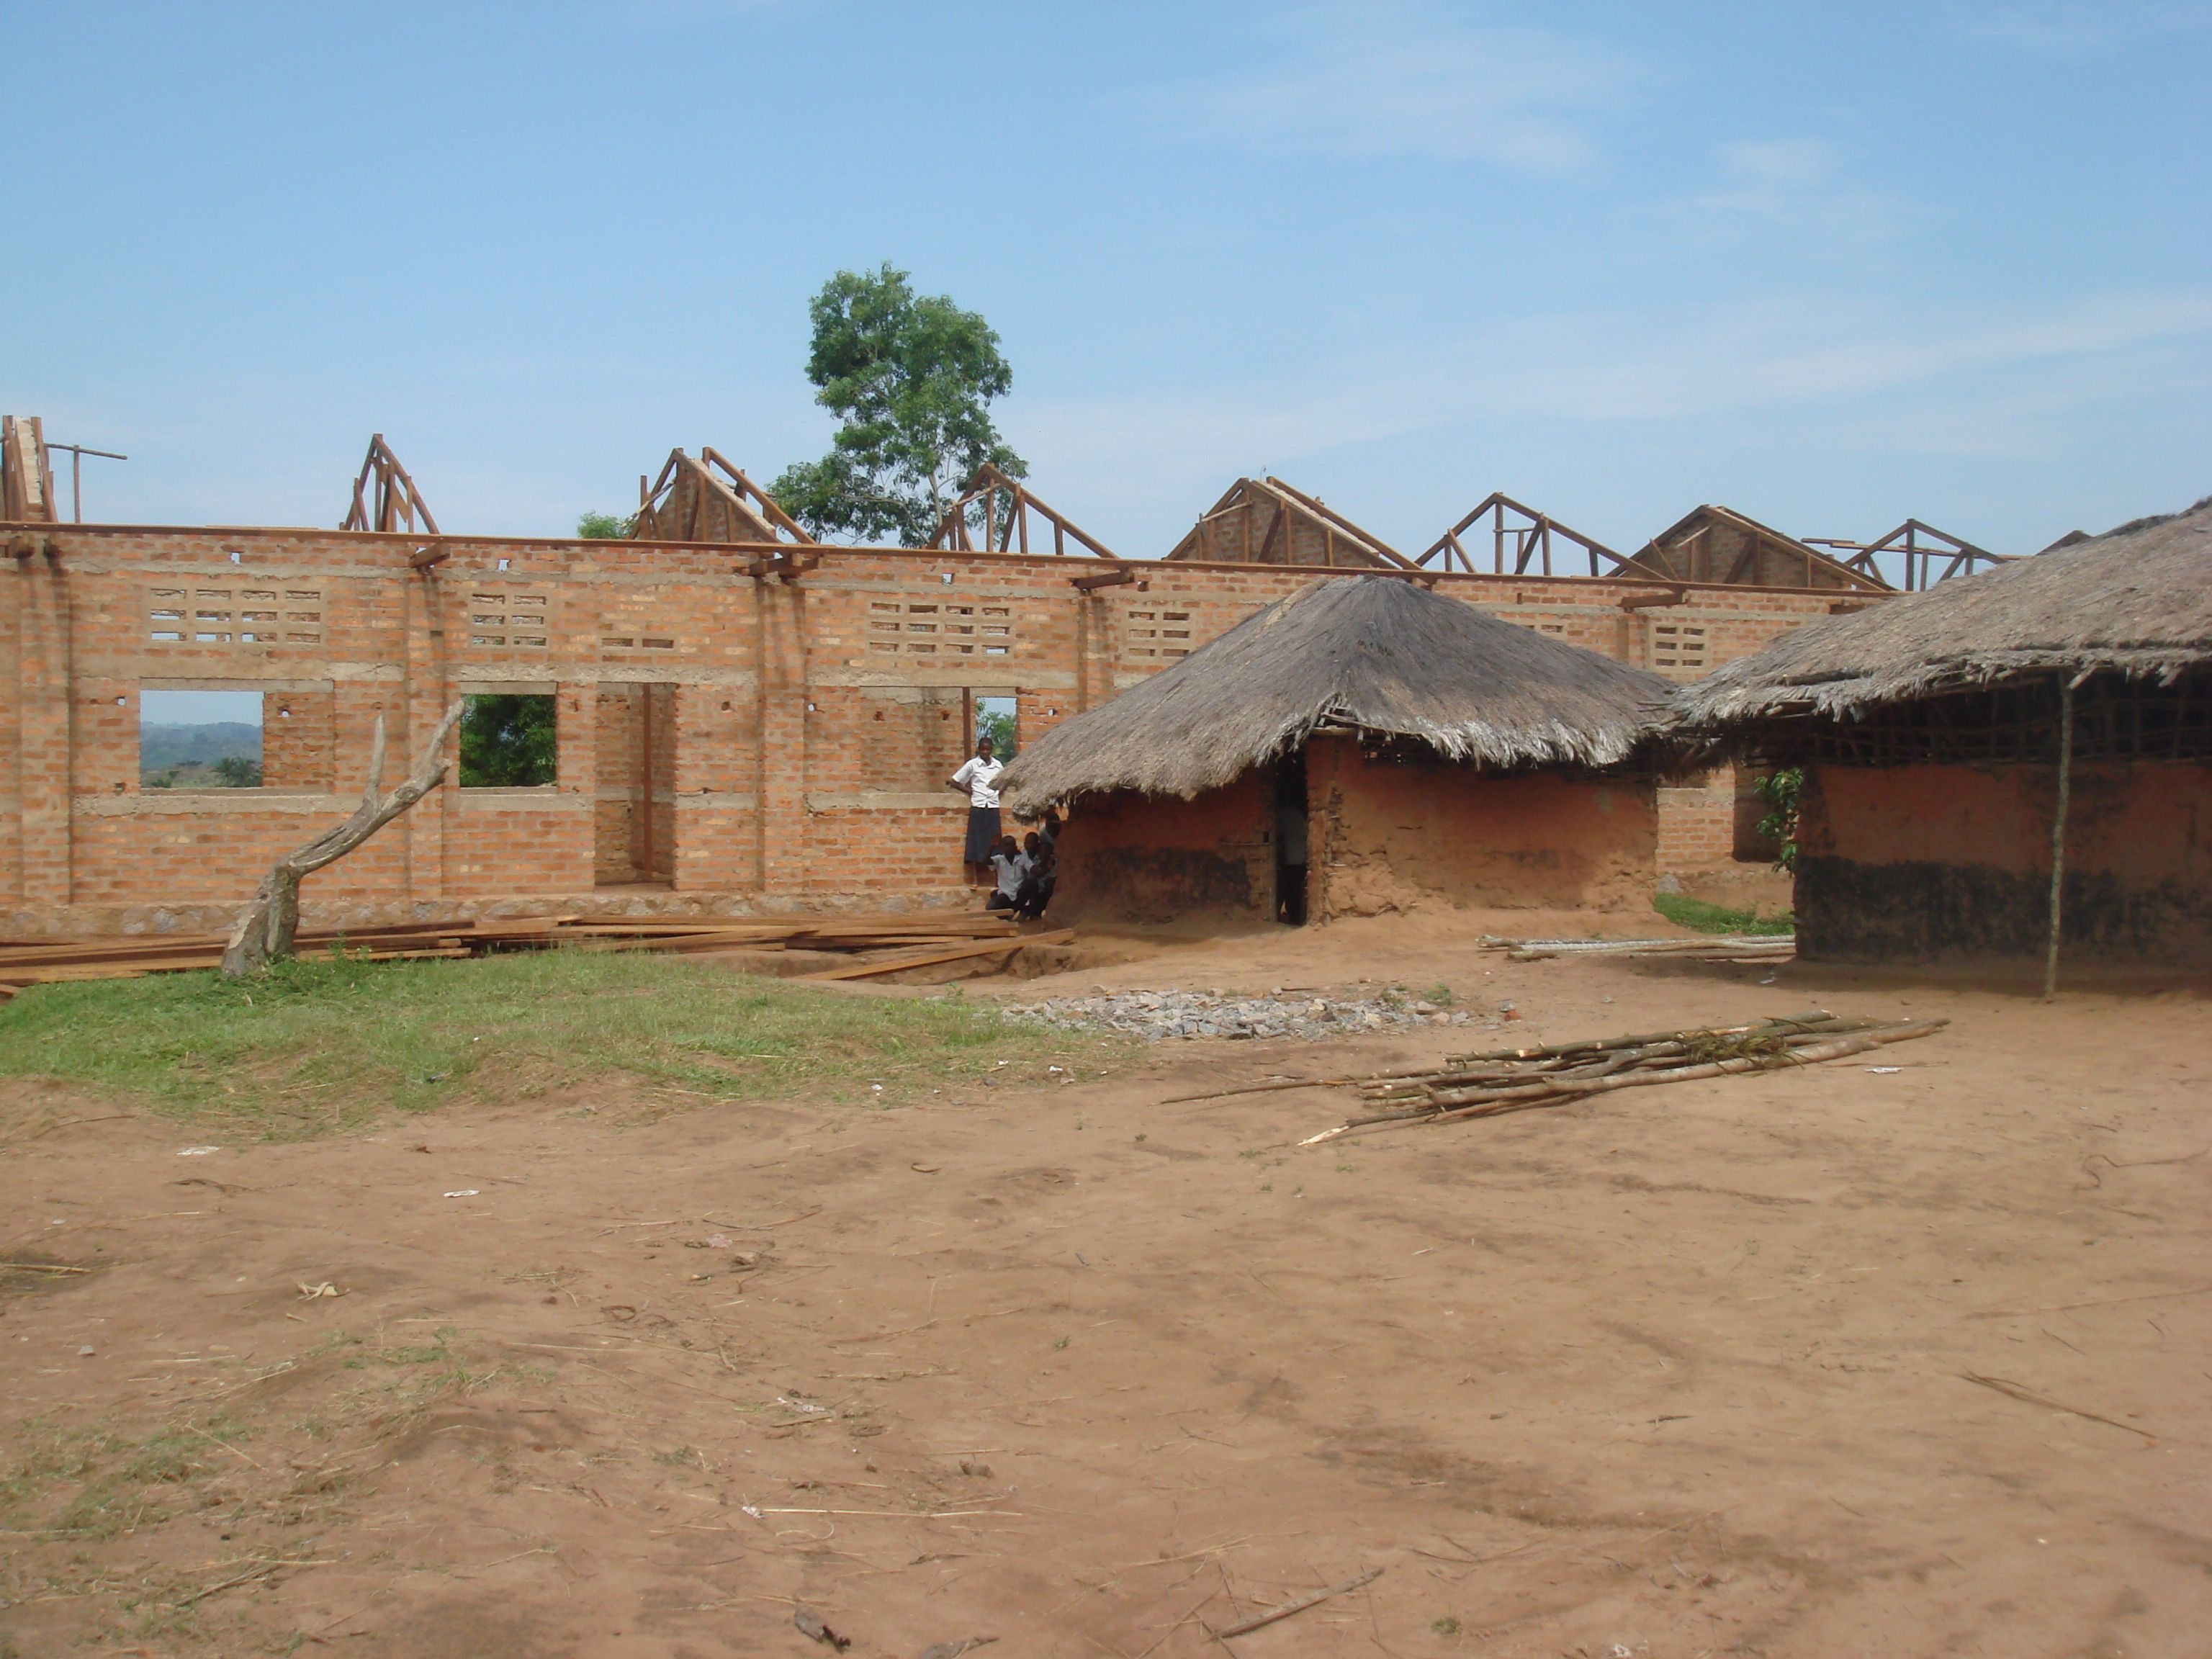 New brick school being built behind current mud hut classrooms